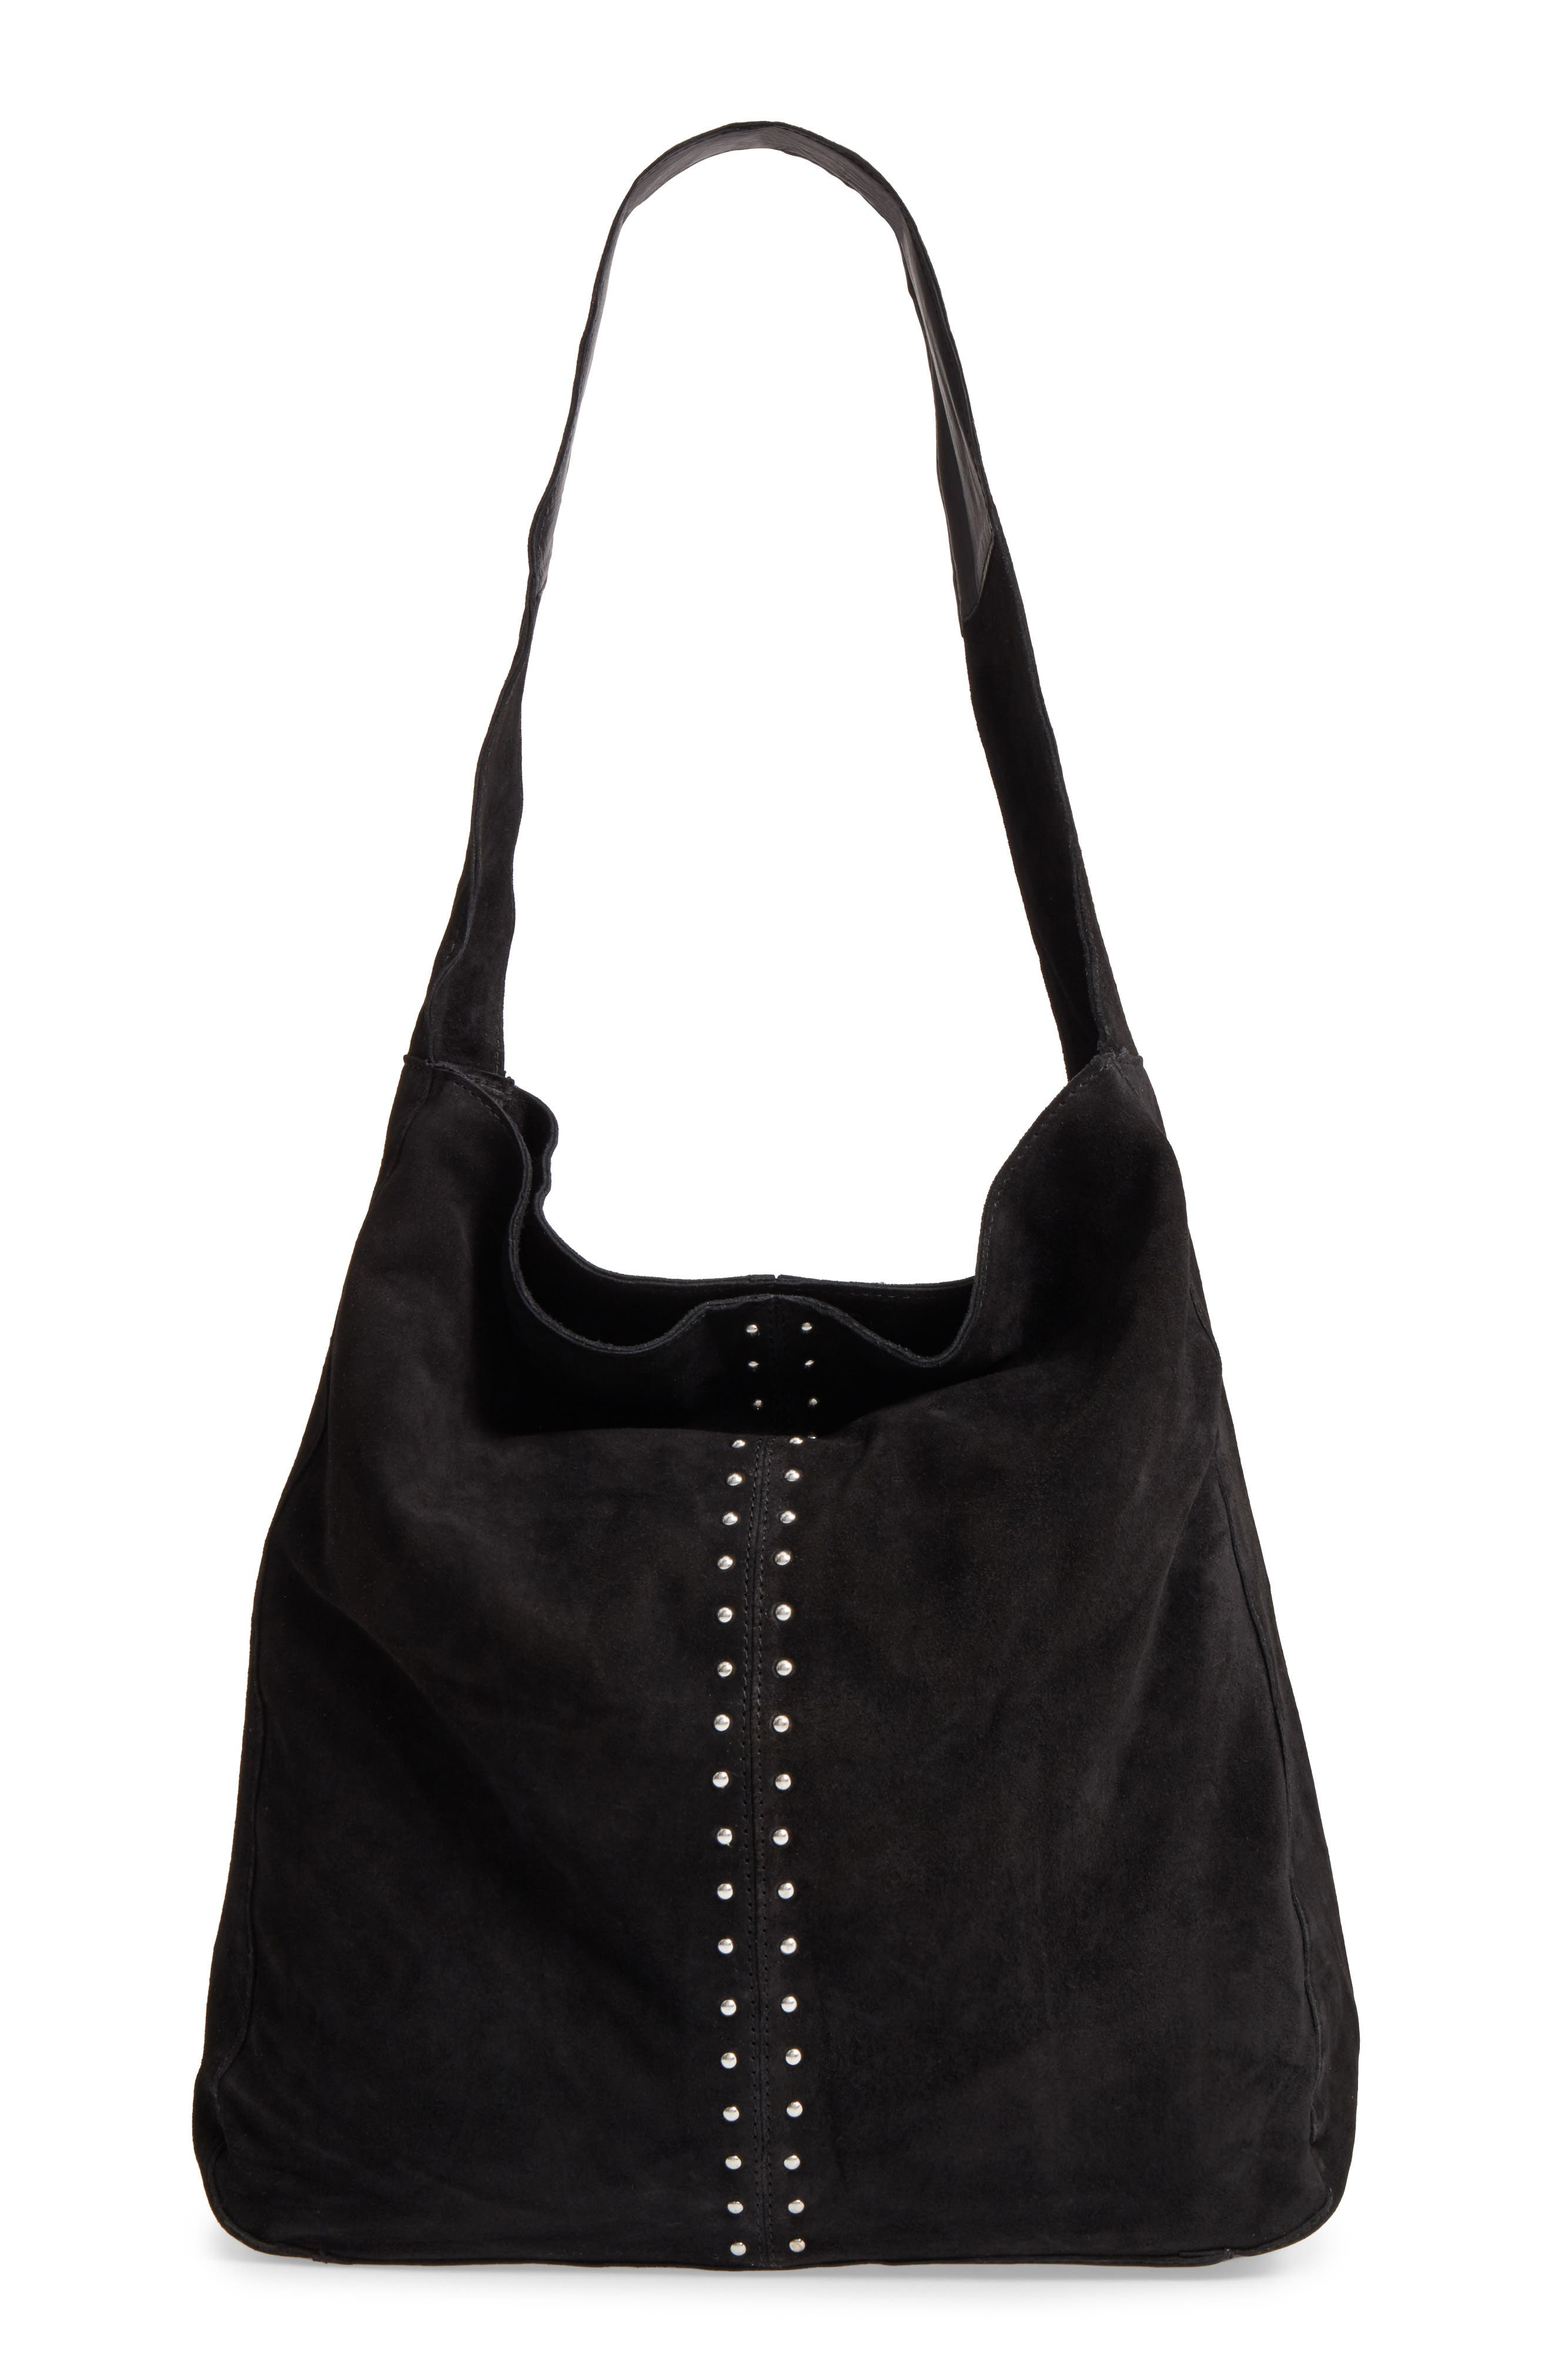 Topshop Sienna Studded Leather Hobo